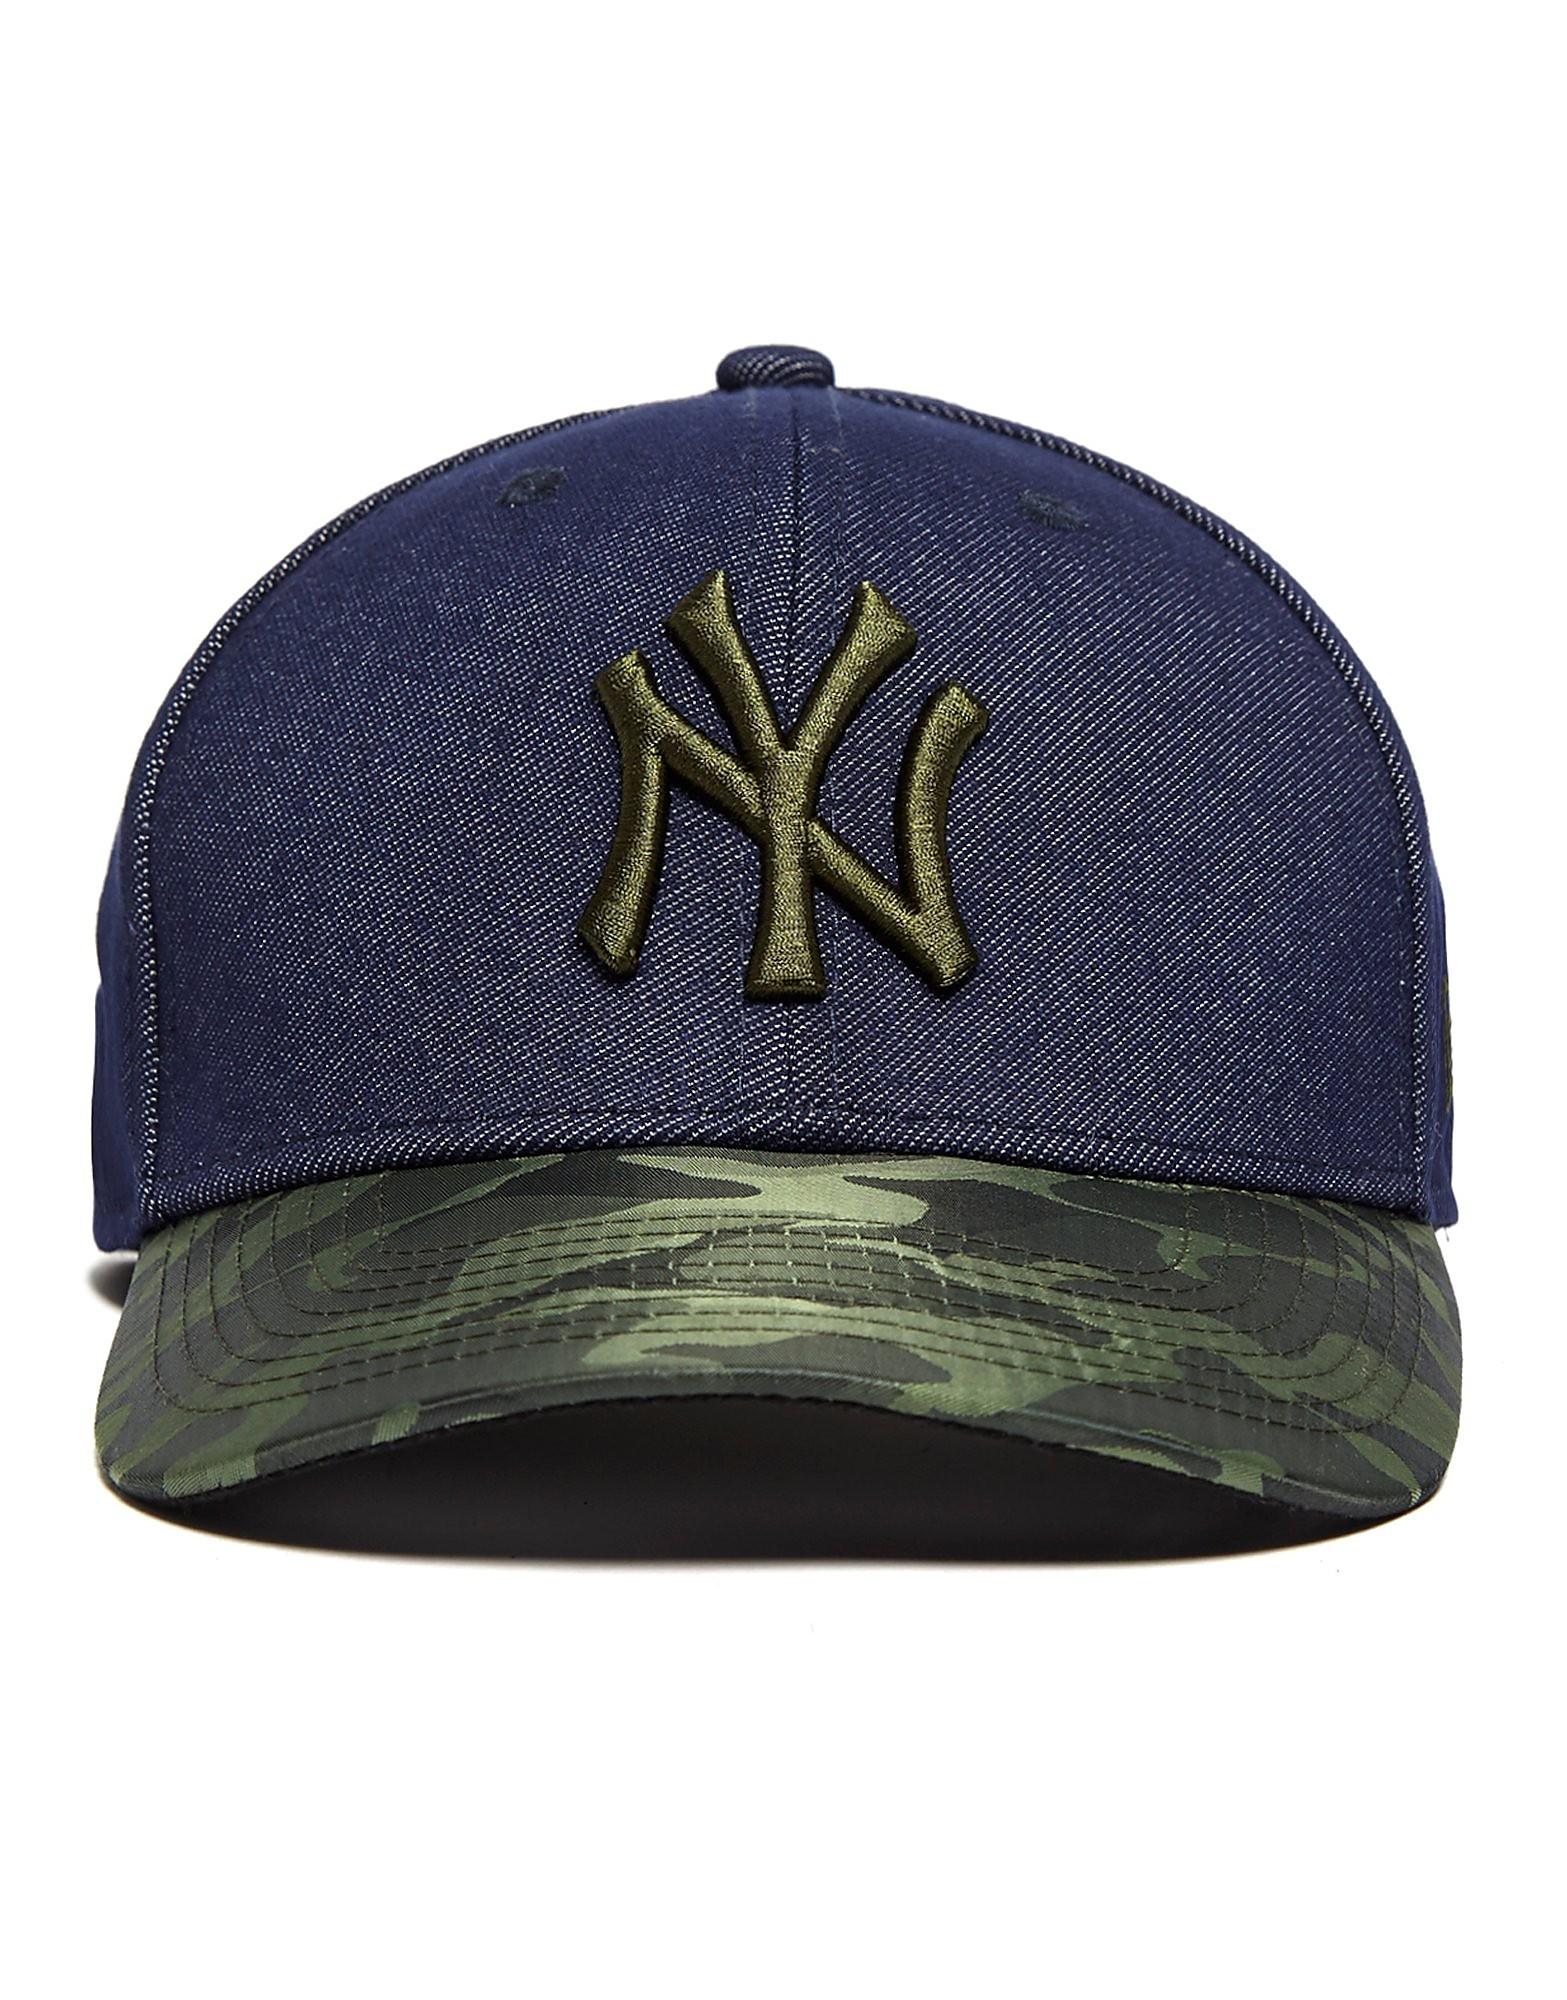 New Era 39THIRTY MLB New York Yankees Fitted Cap